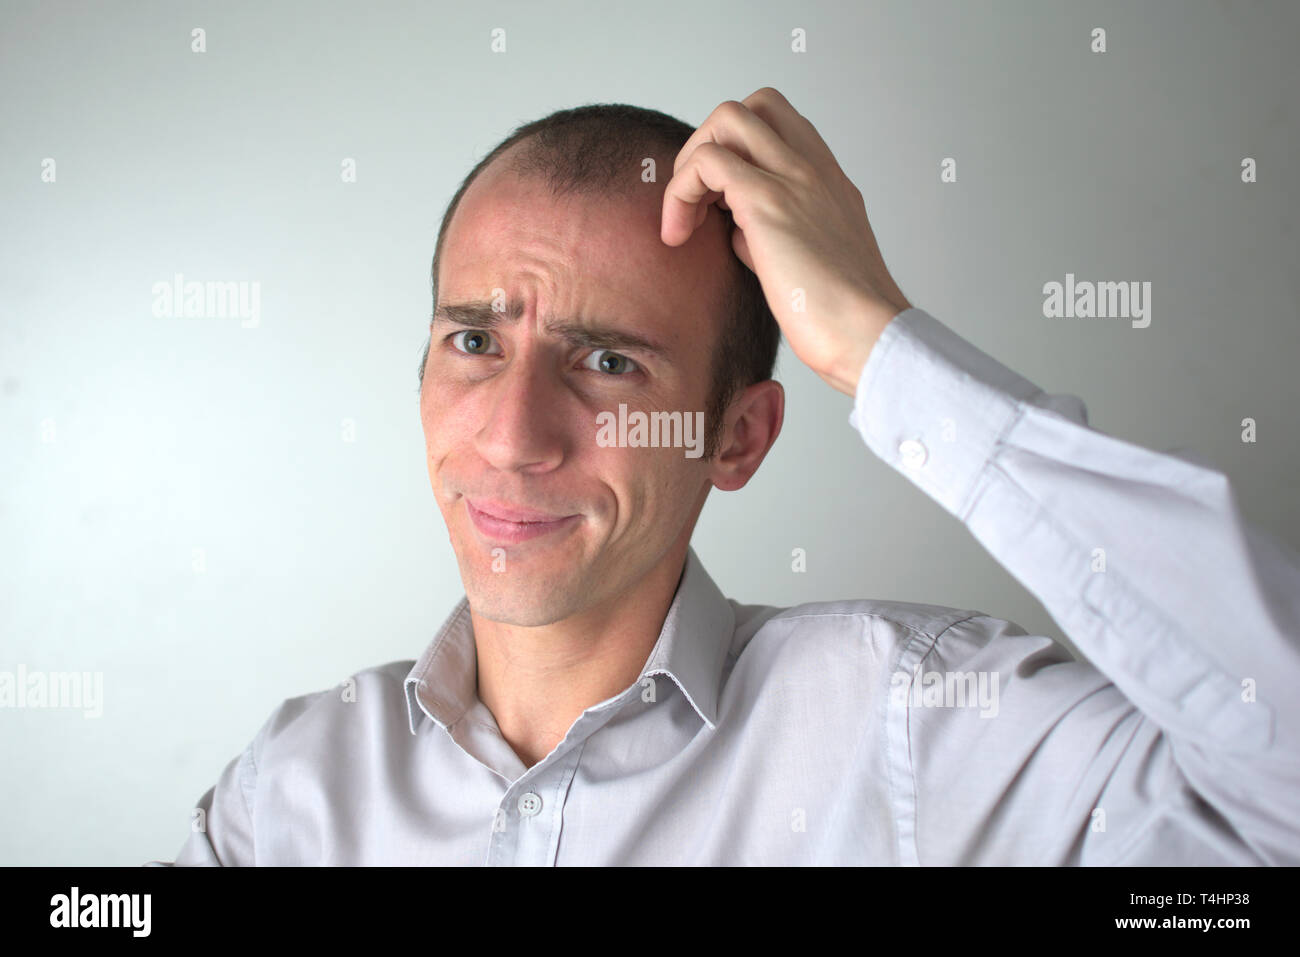 Studio shot of a business man with a troubled expression in his face. - Stock Image